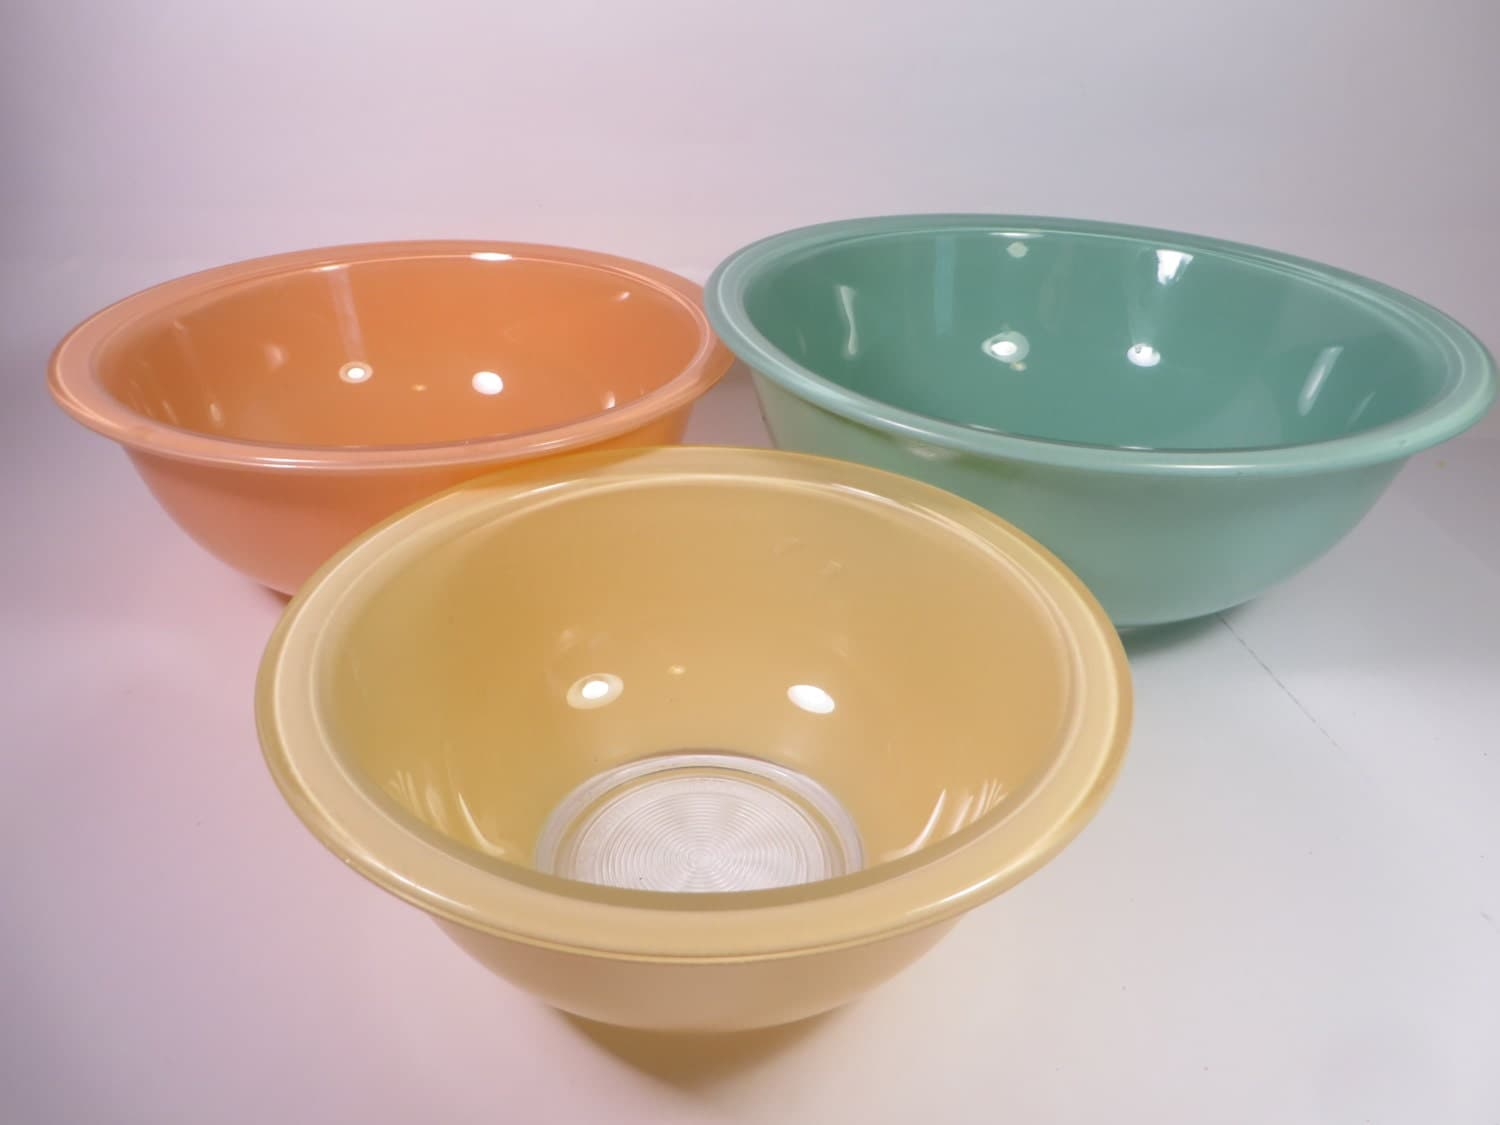 Vintage Pyrex Southwest Mixing Bowls Set Of 3 Pyrex Clear